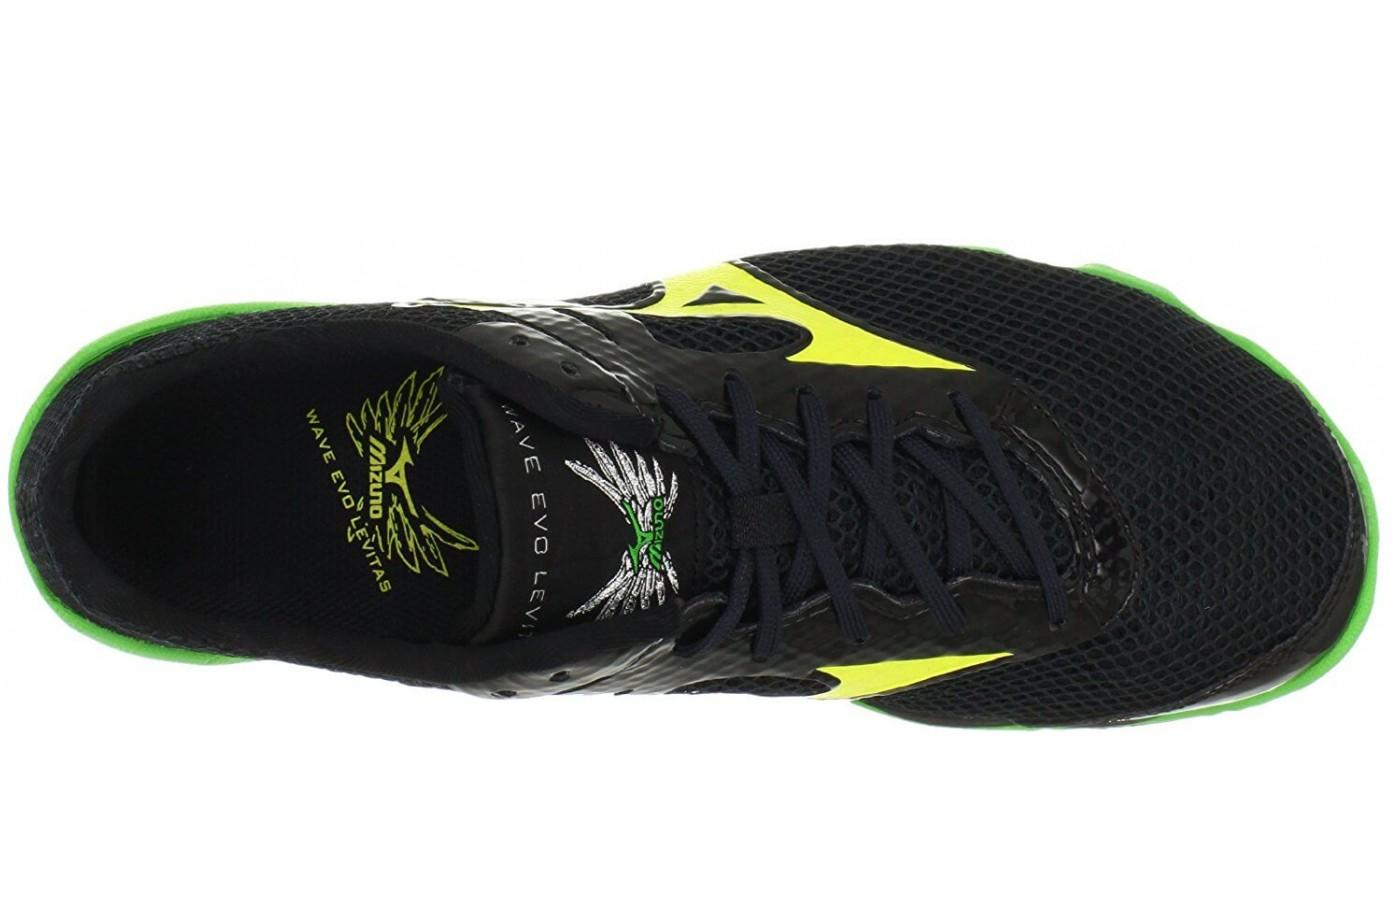 Mizuno Wave Evo Levitas has a super breathable upper